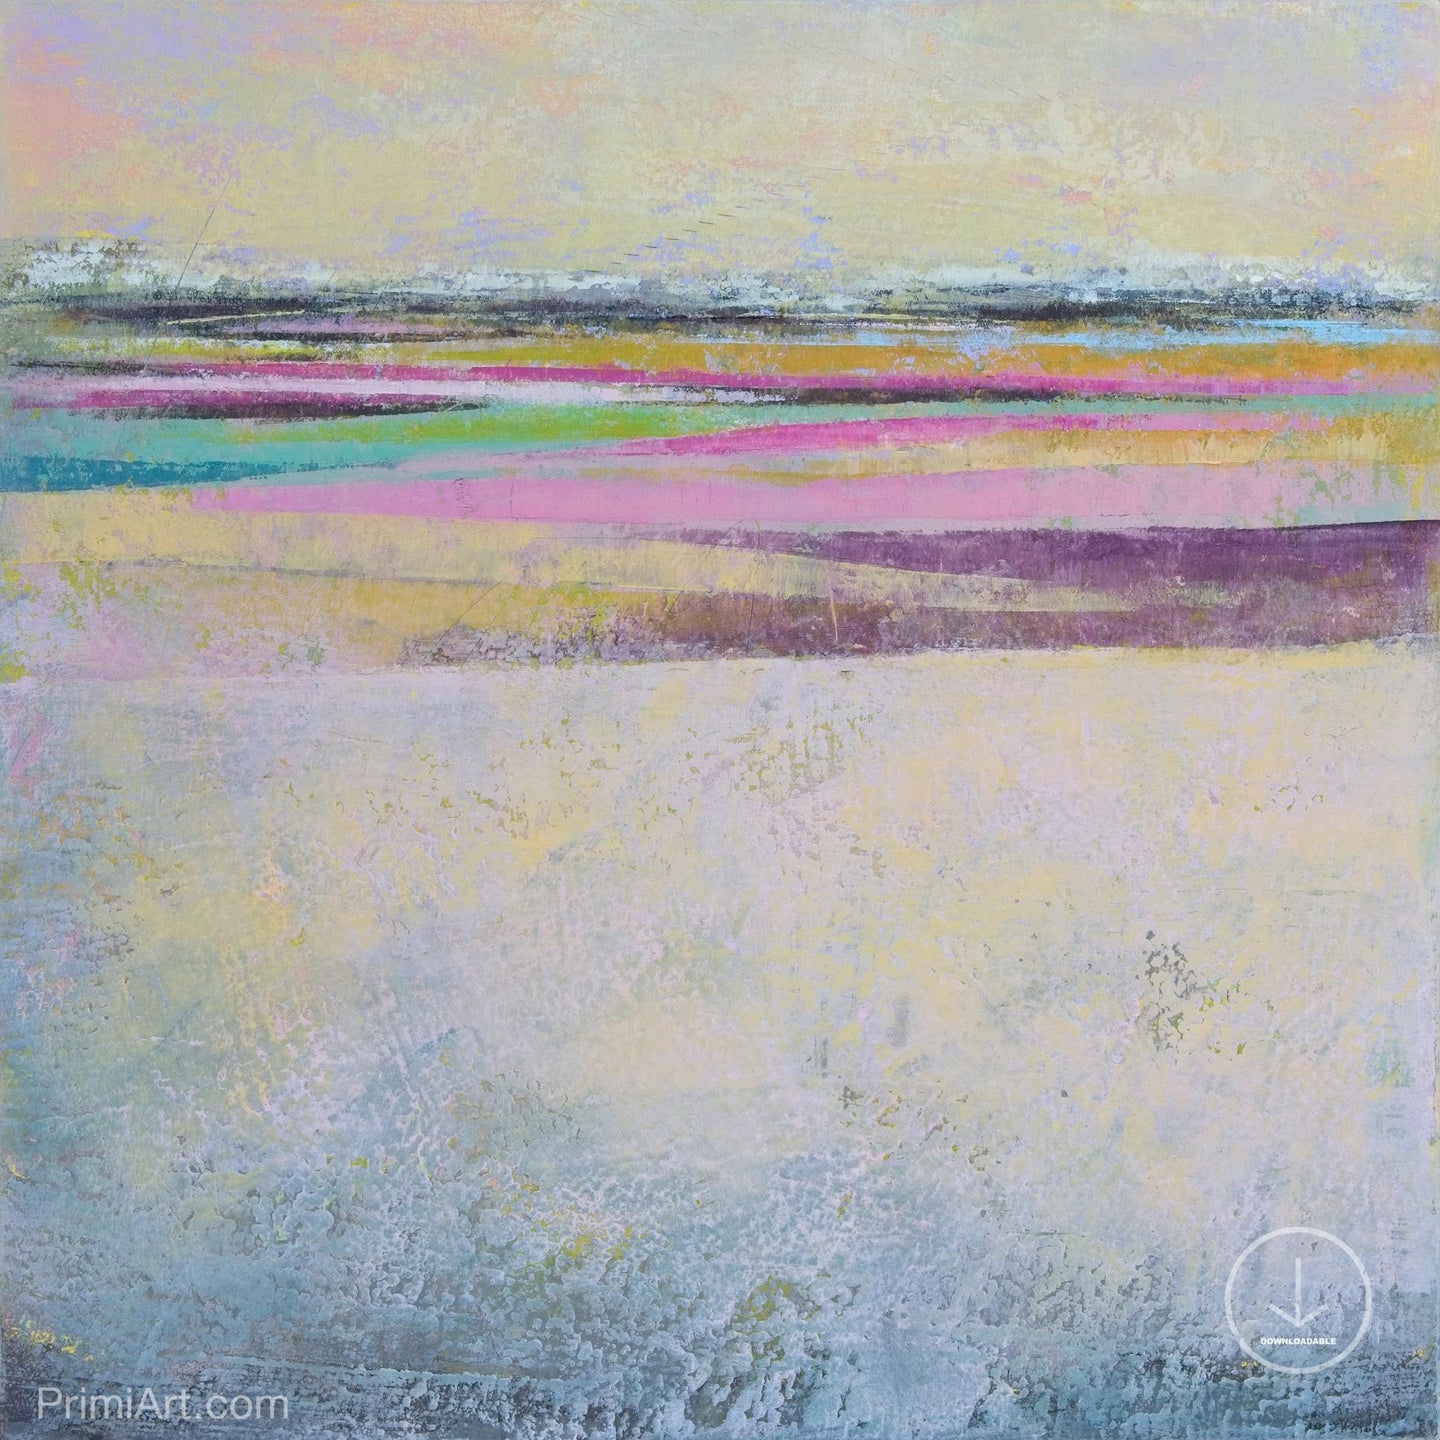 Square abstract seascape painting